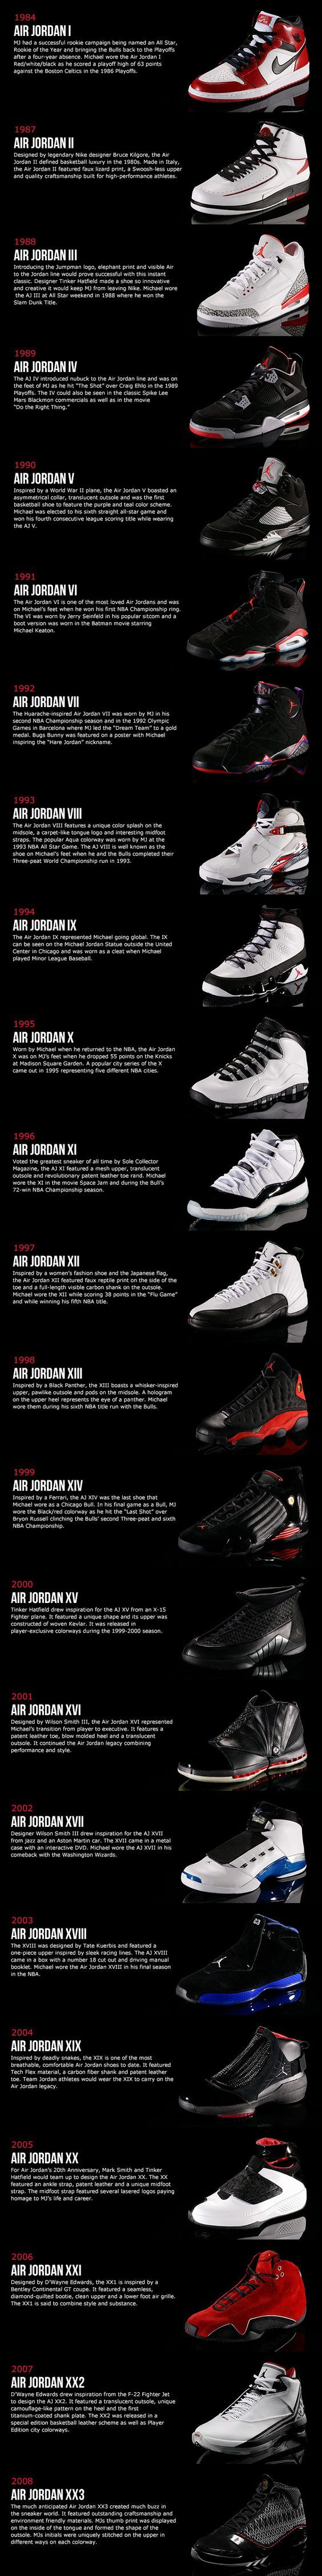 83ca13ed42d1b0 History of Air Jordan Shoes. Air Jordan is a brand of basketball footwear  and athletic clothing produced by Nike and endorsed and created for Chicago  Bulls ...